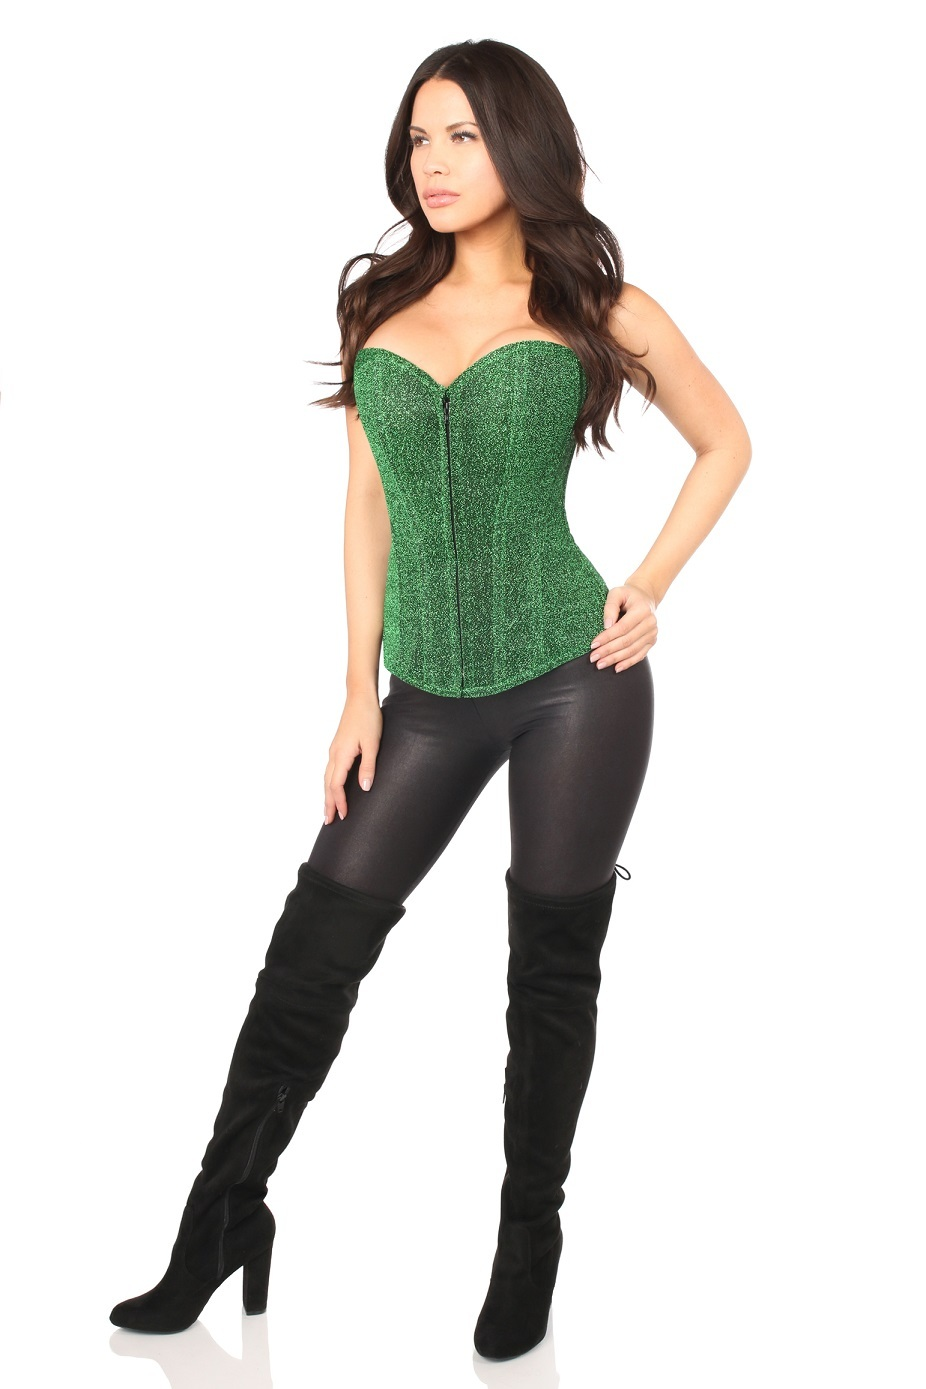 Lavish Green Glitter Corset  Steel Boned with Side Zipper - Small to Plus Sizes